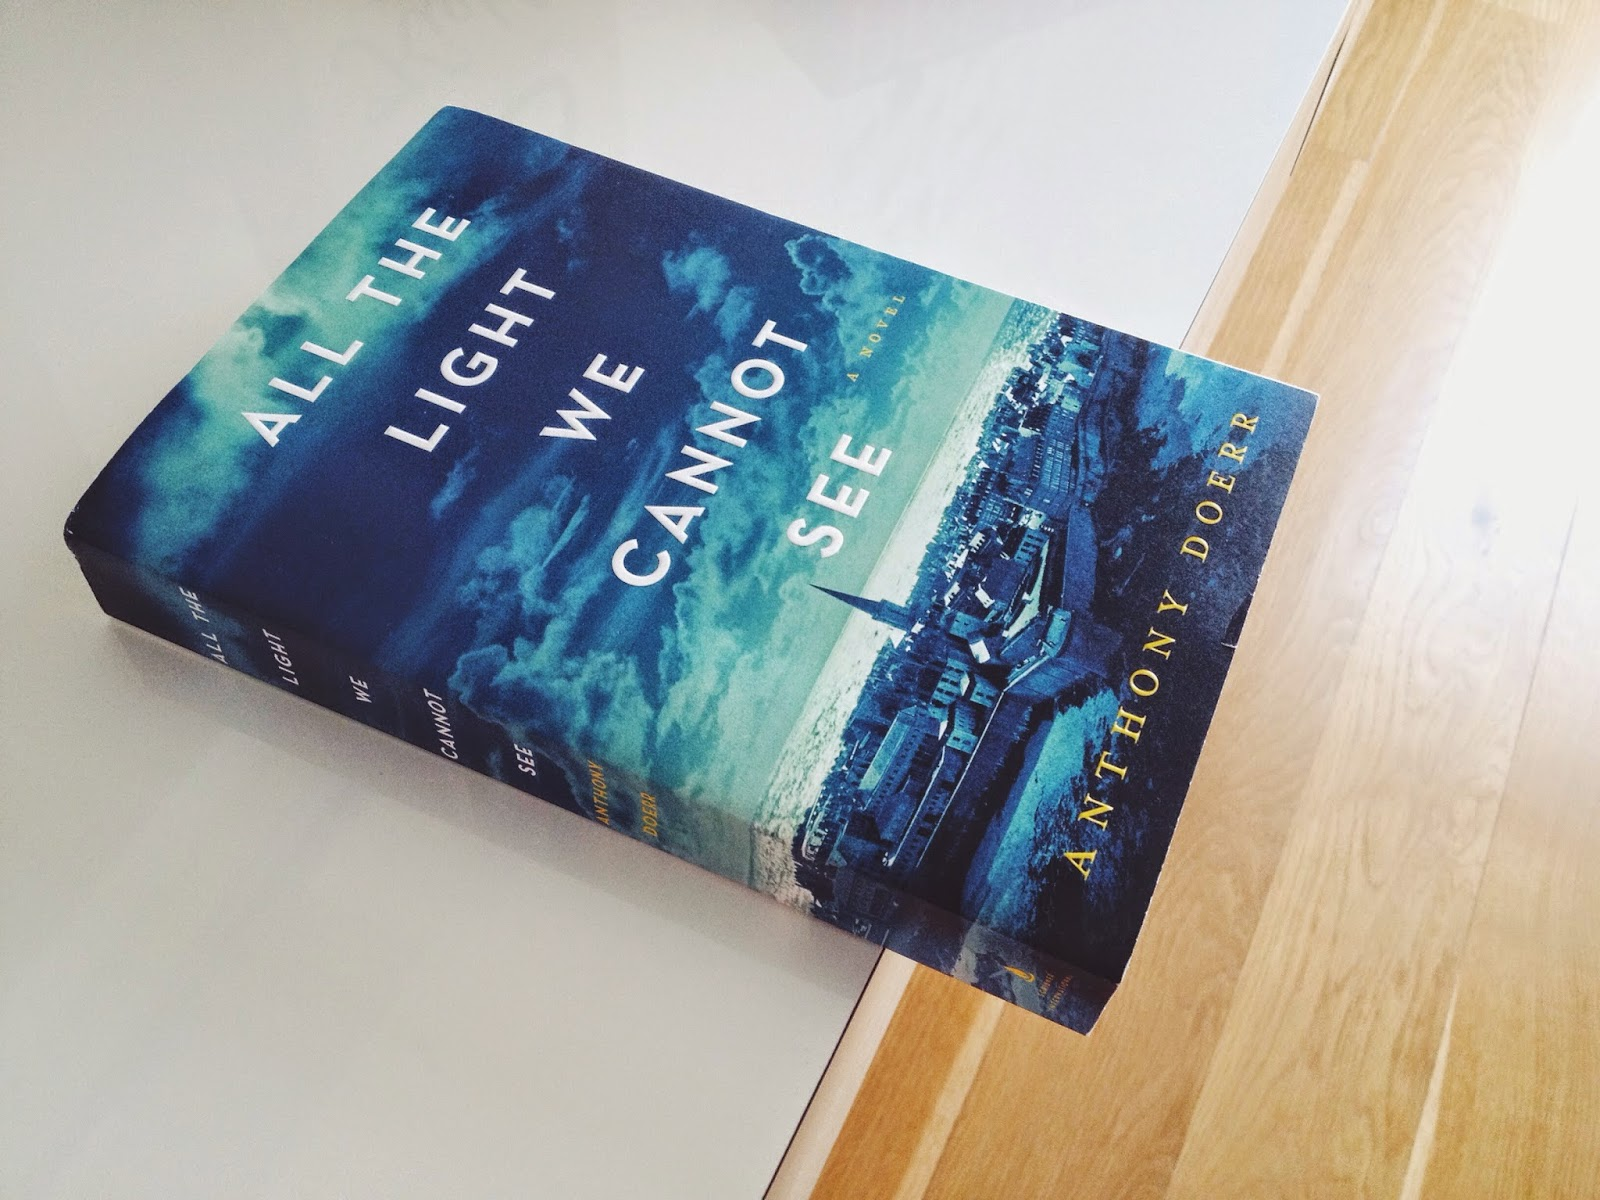 [REVIEW] All The Light We Cannot See By Anthony Doerr